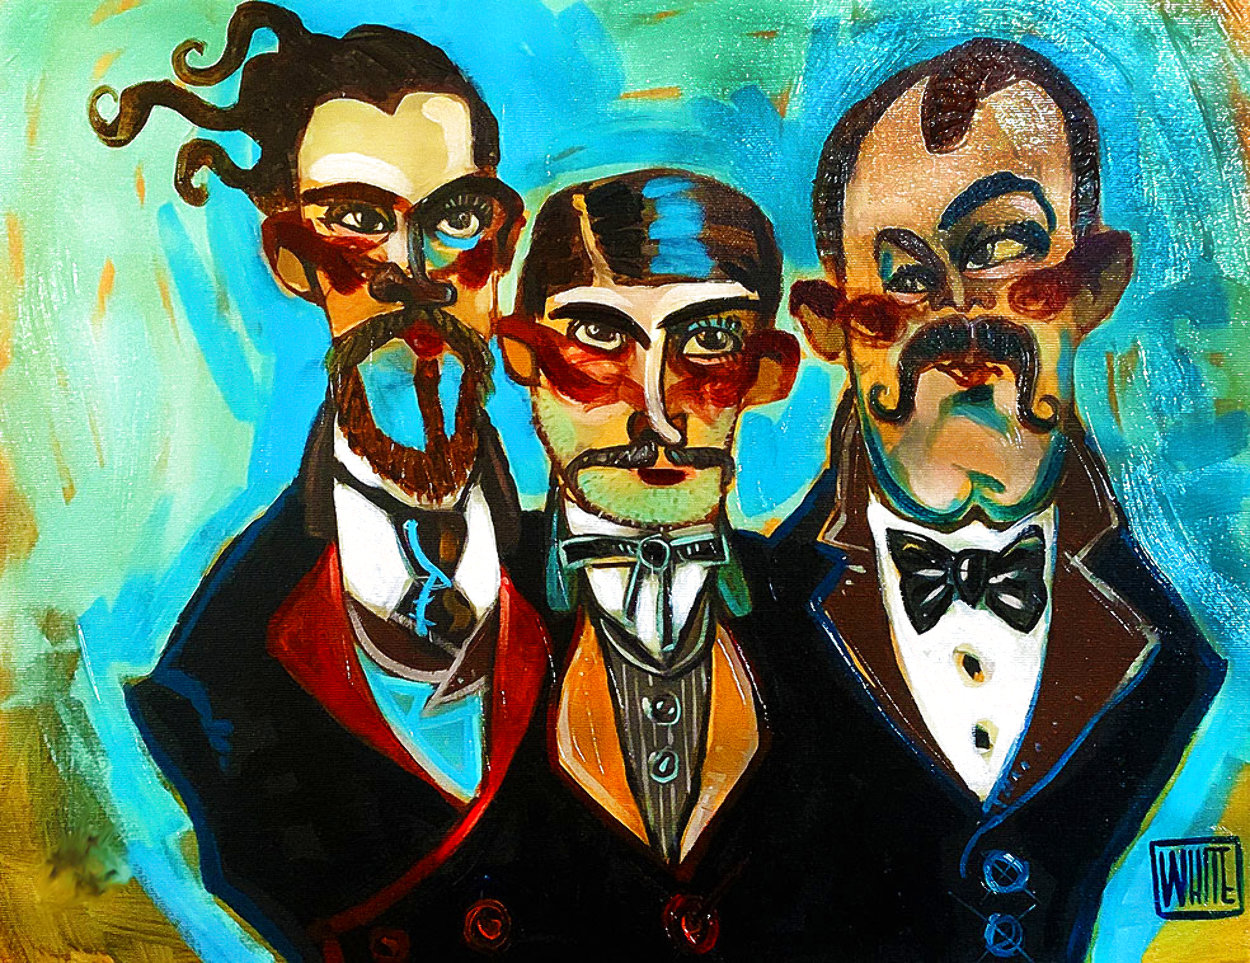 Unscrupulous 2014 Embellished Limited Edition Print by Todd White